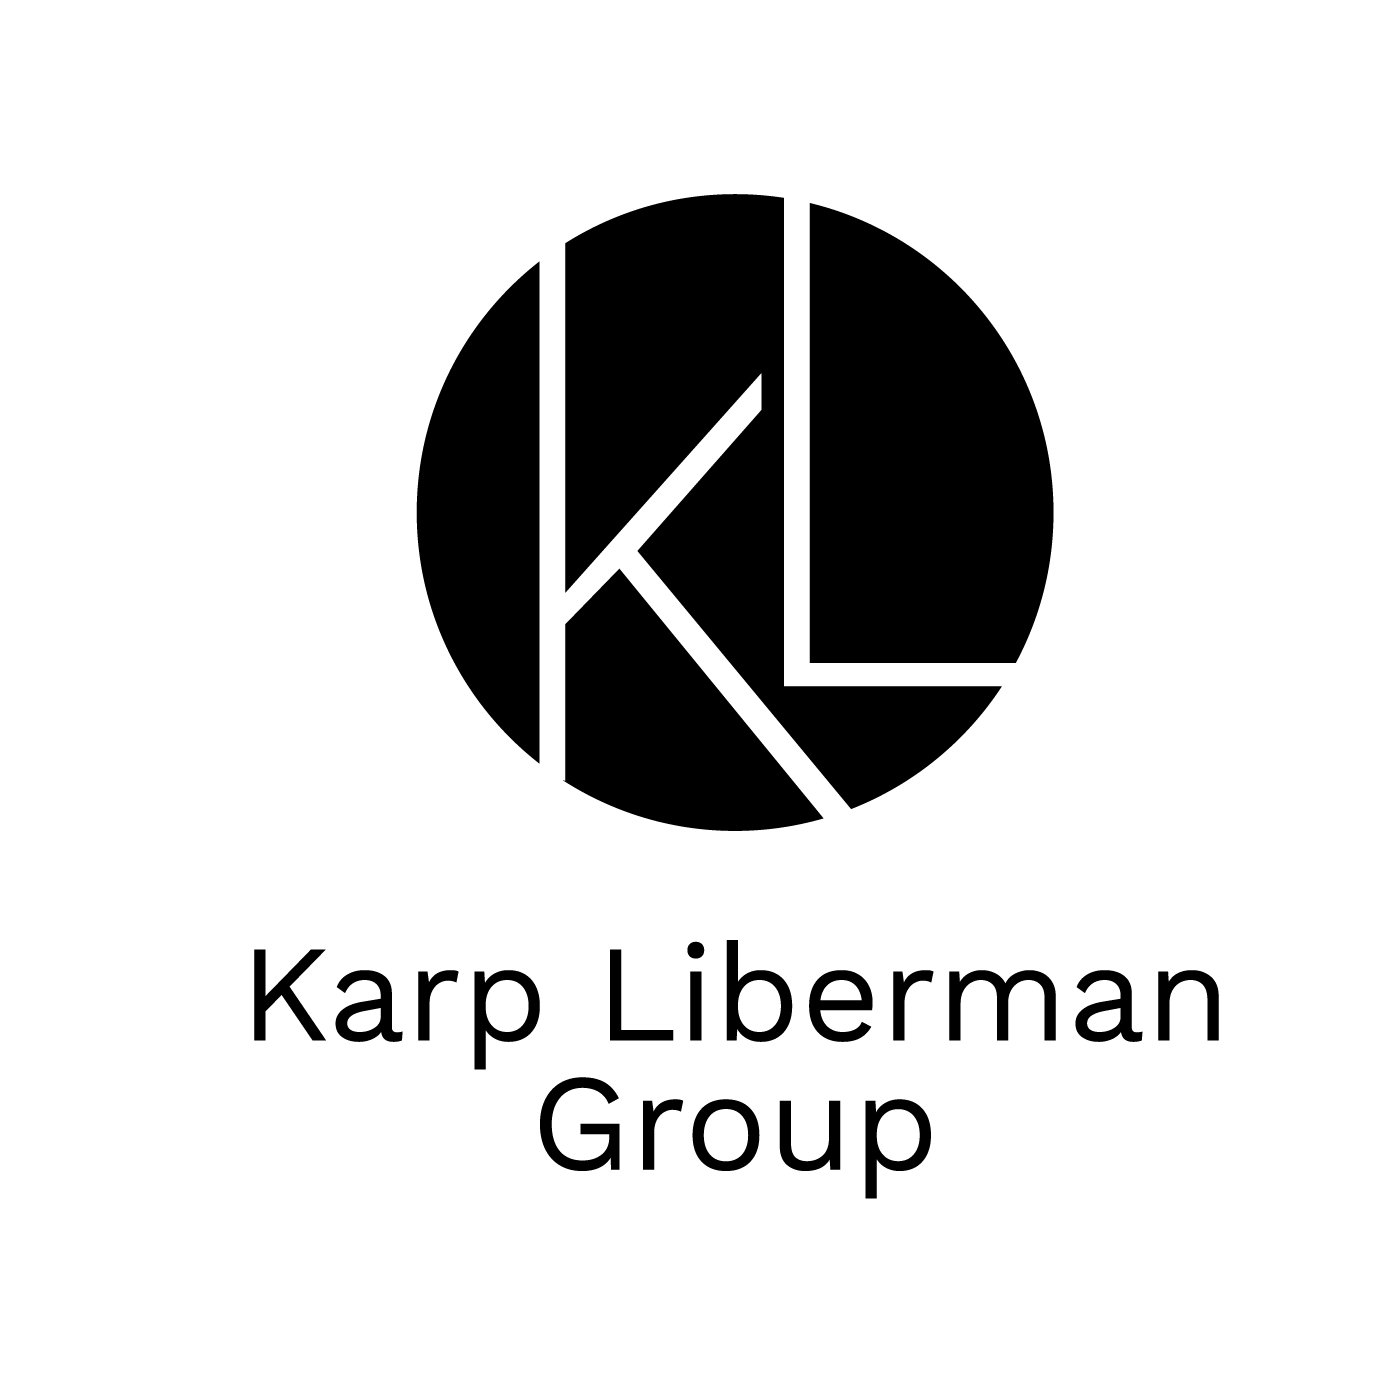 Karp Liberman Group